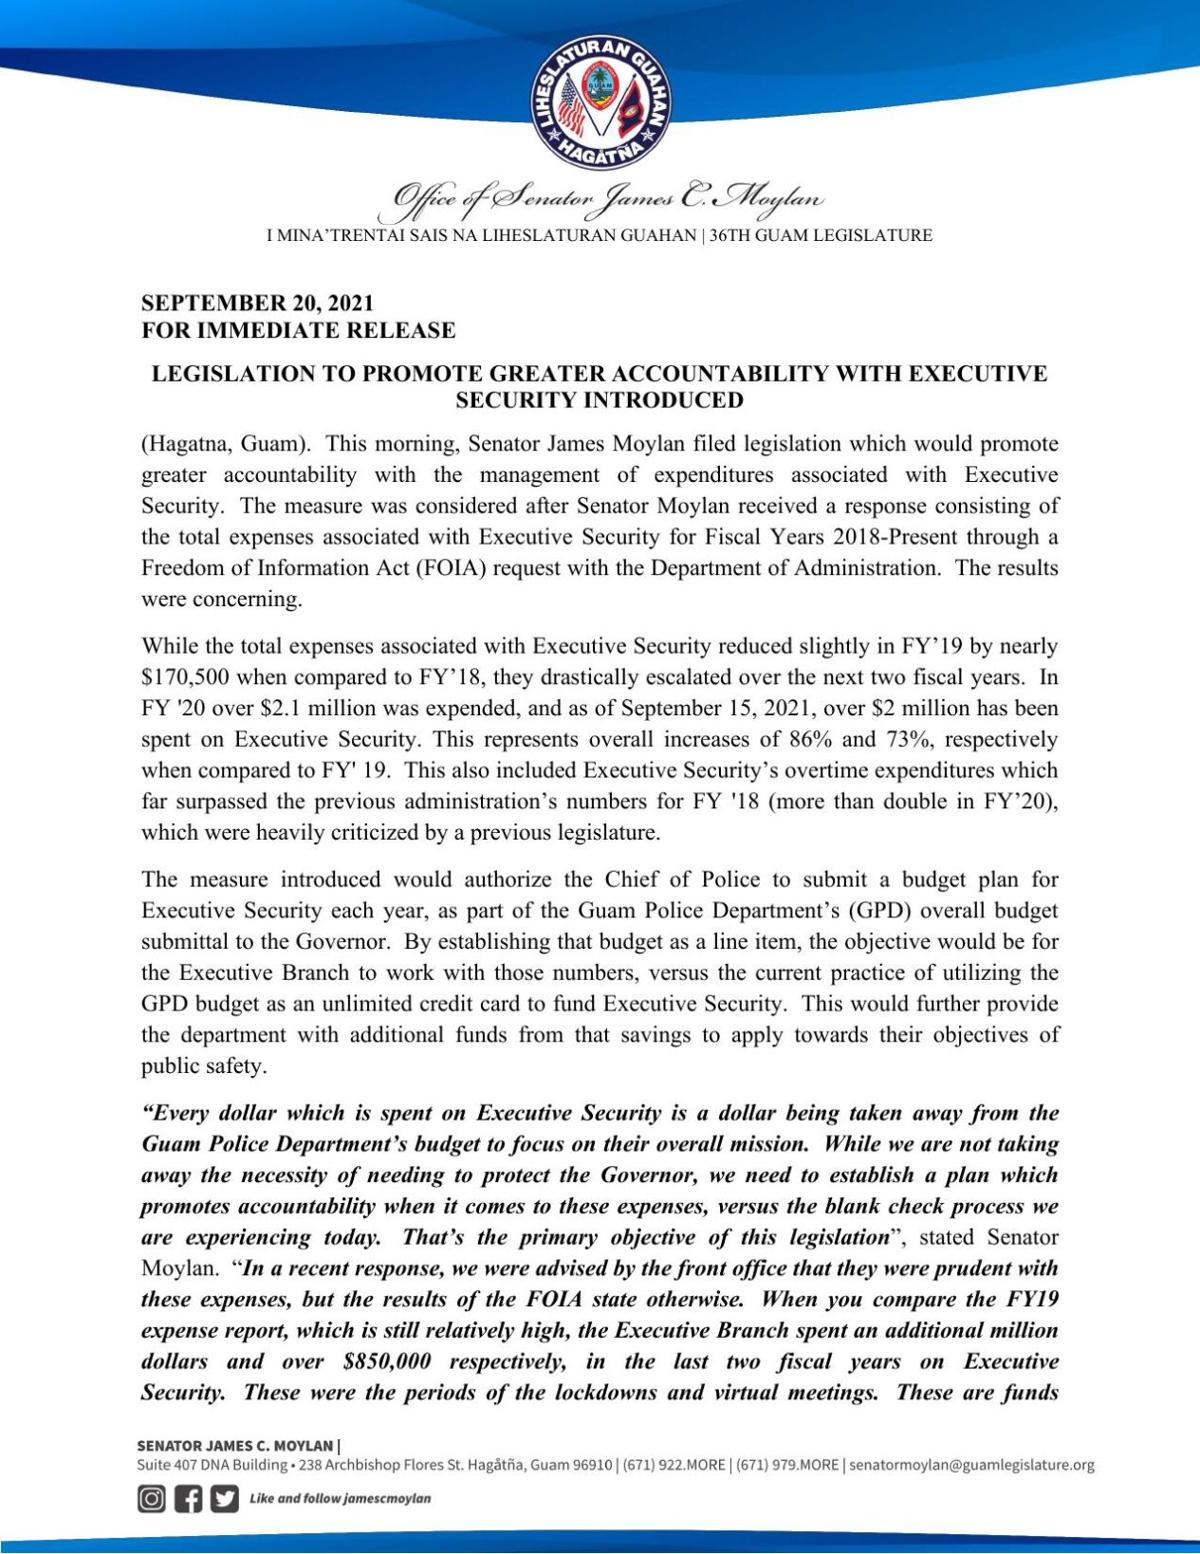 Moylan press release on legislation and exec. security costs